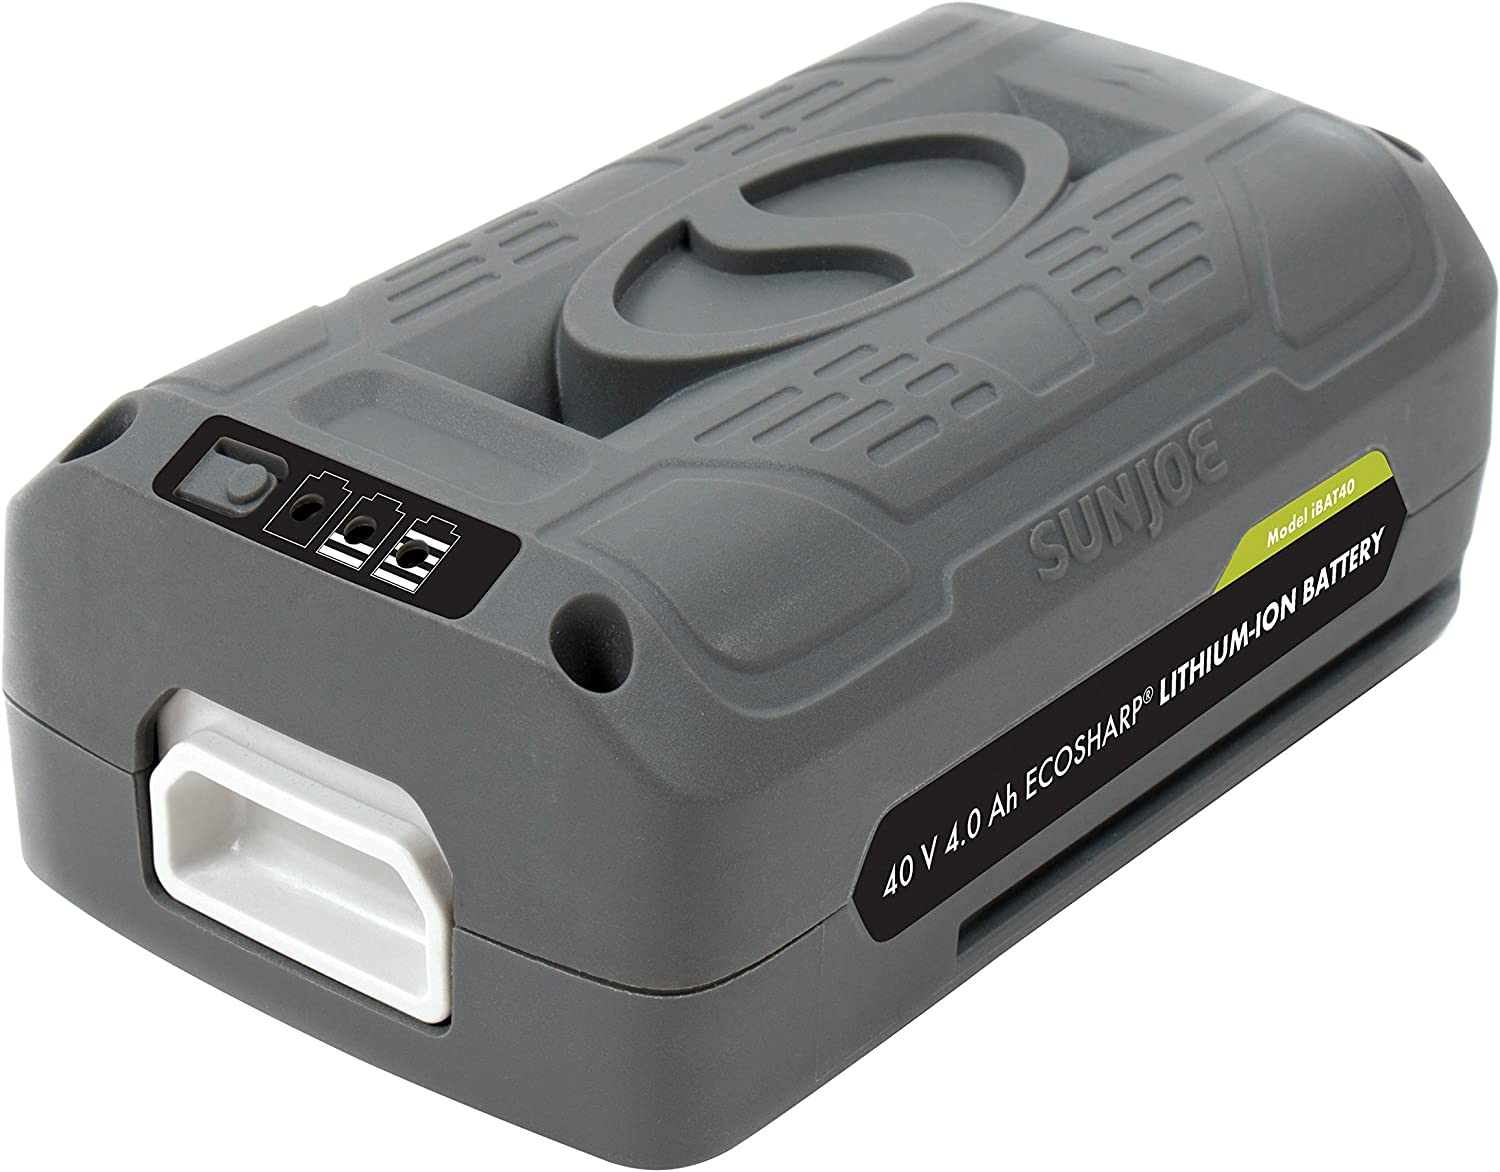 Snow Joe Sun Joe iONMAX iBAT40 EcoSharp Lithium-Ion Battery 40 Volt 4.0 Ah